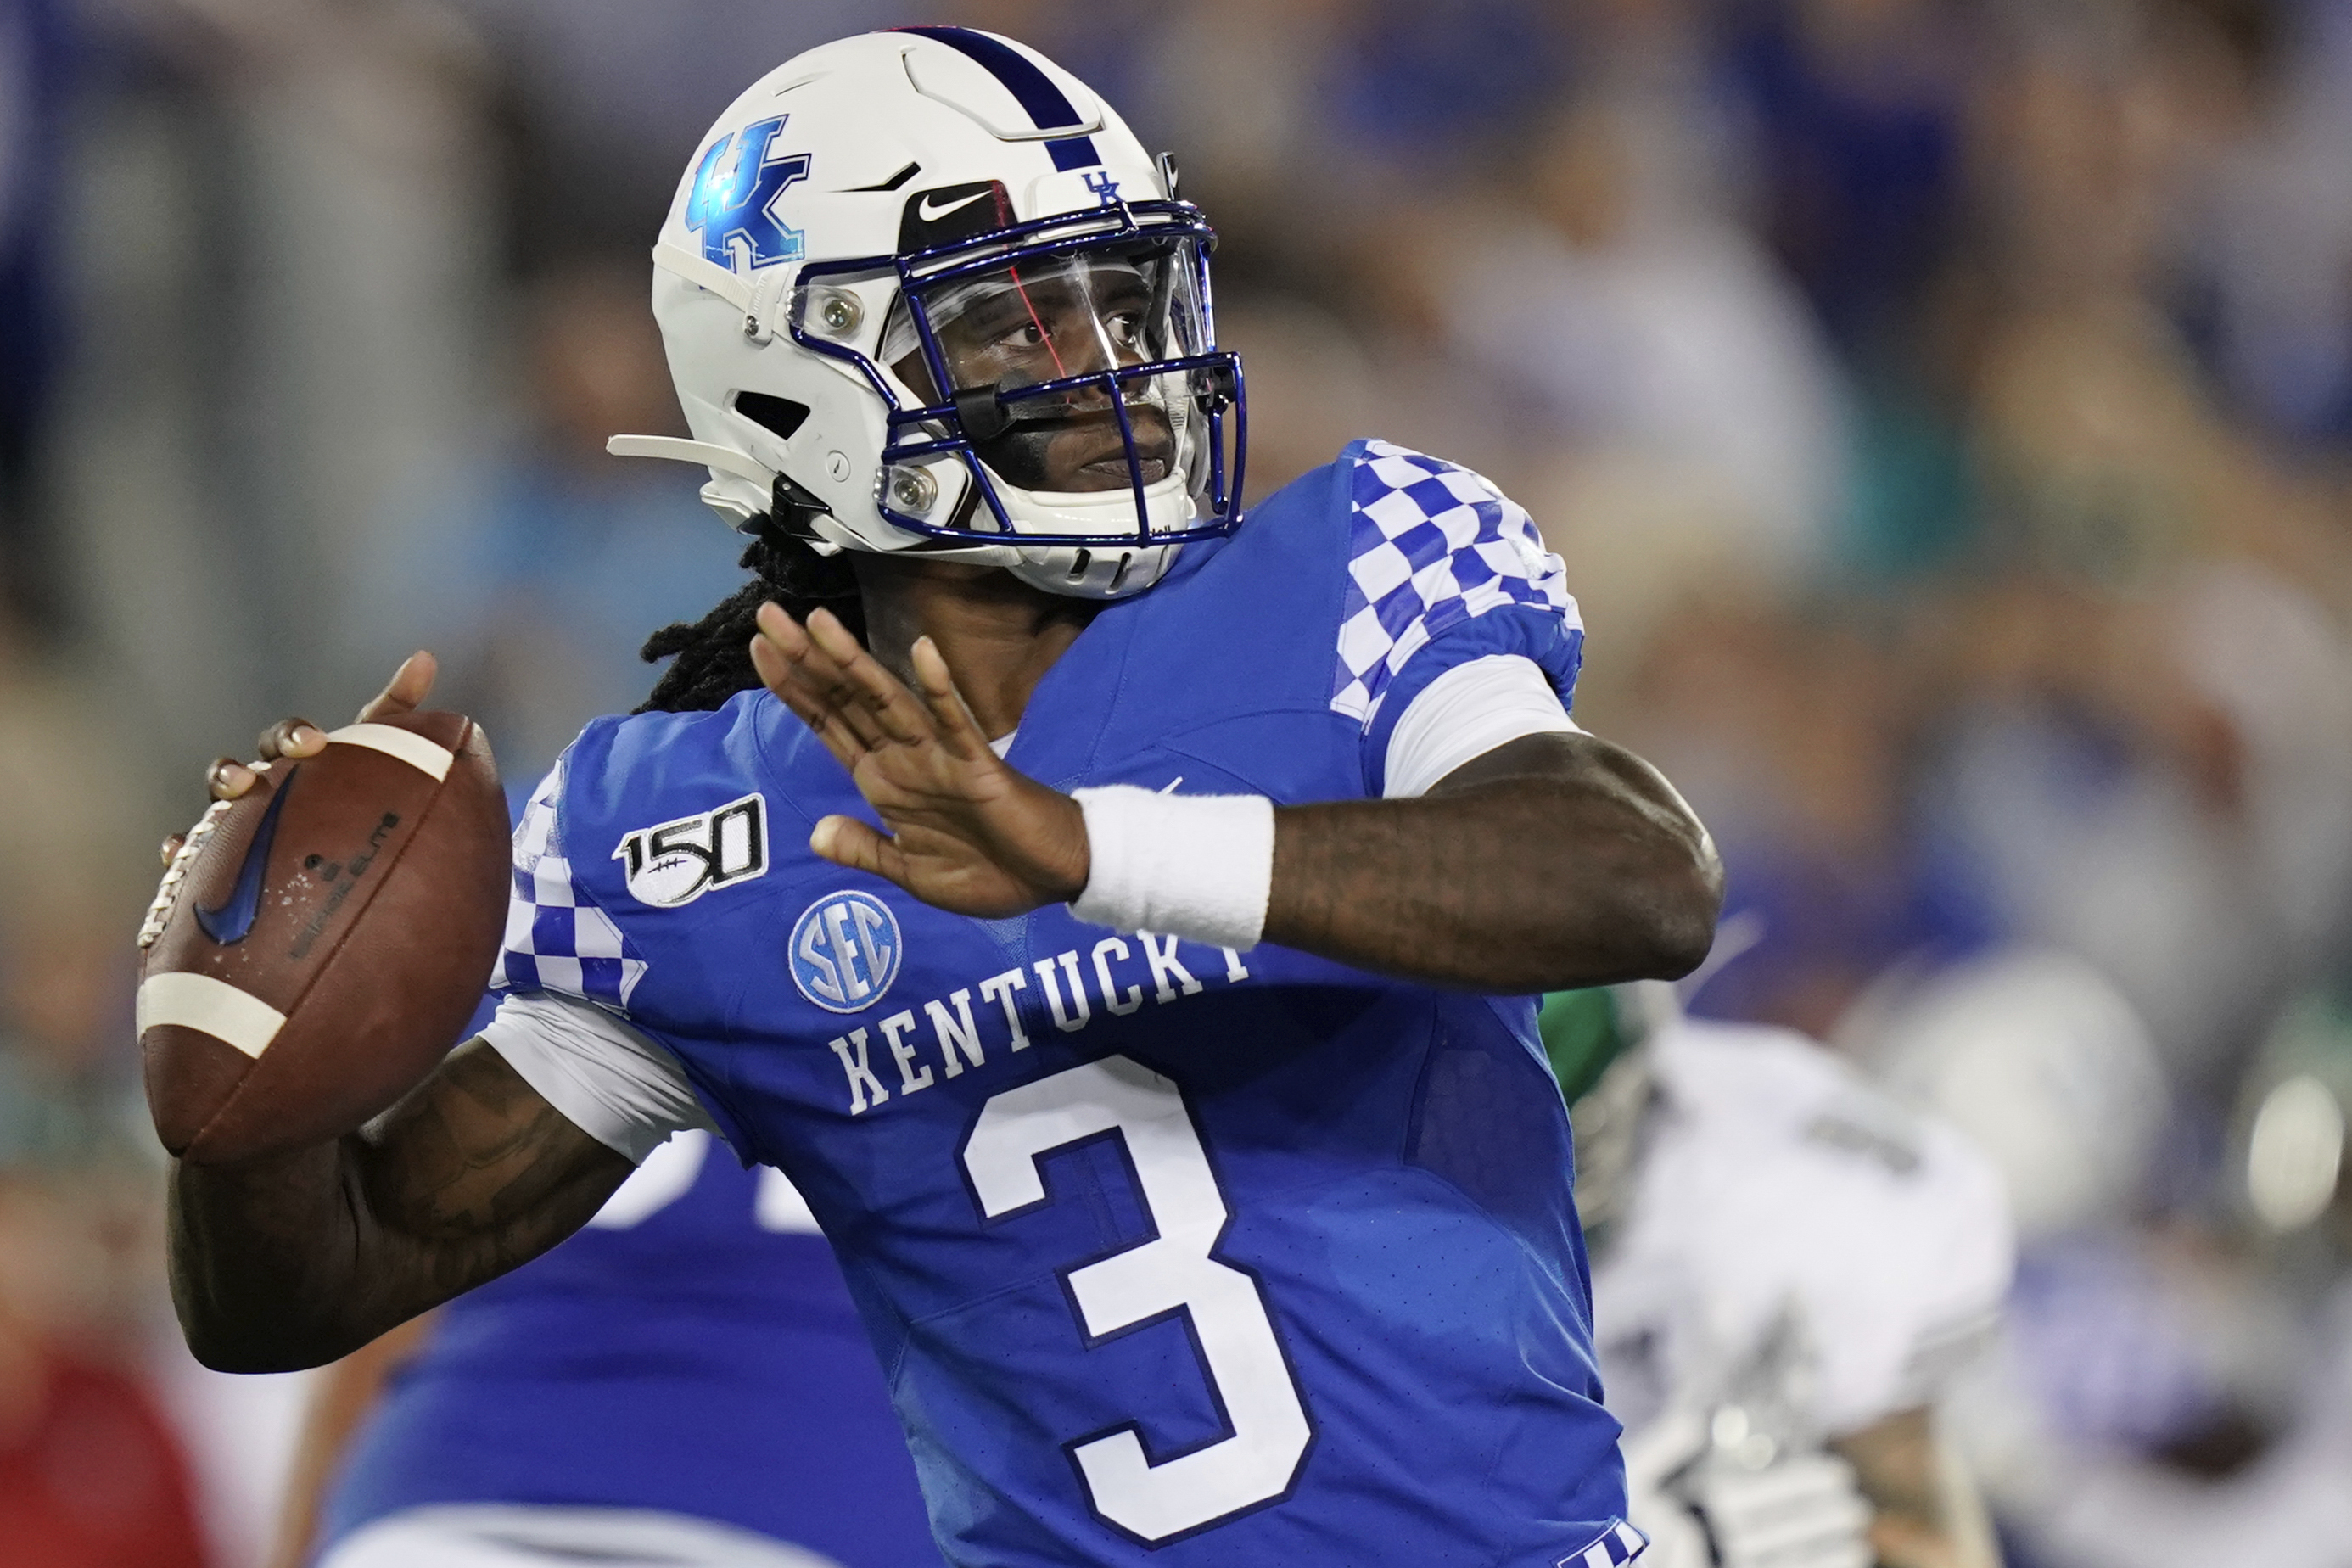 Kentucky QB Terry Wilson will have MRI on injured left knee